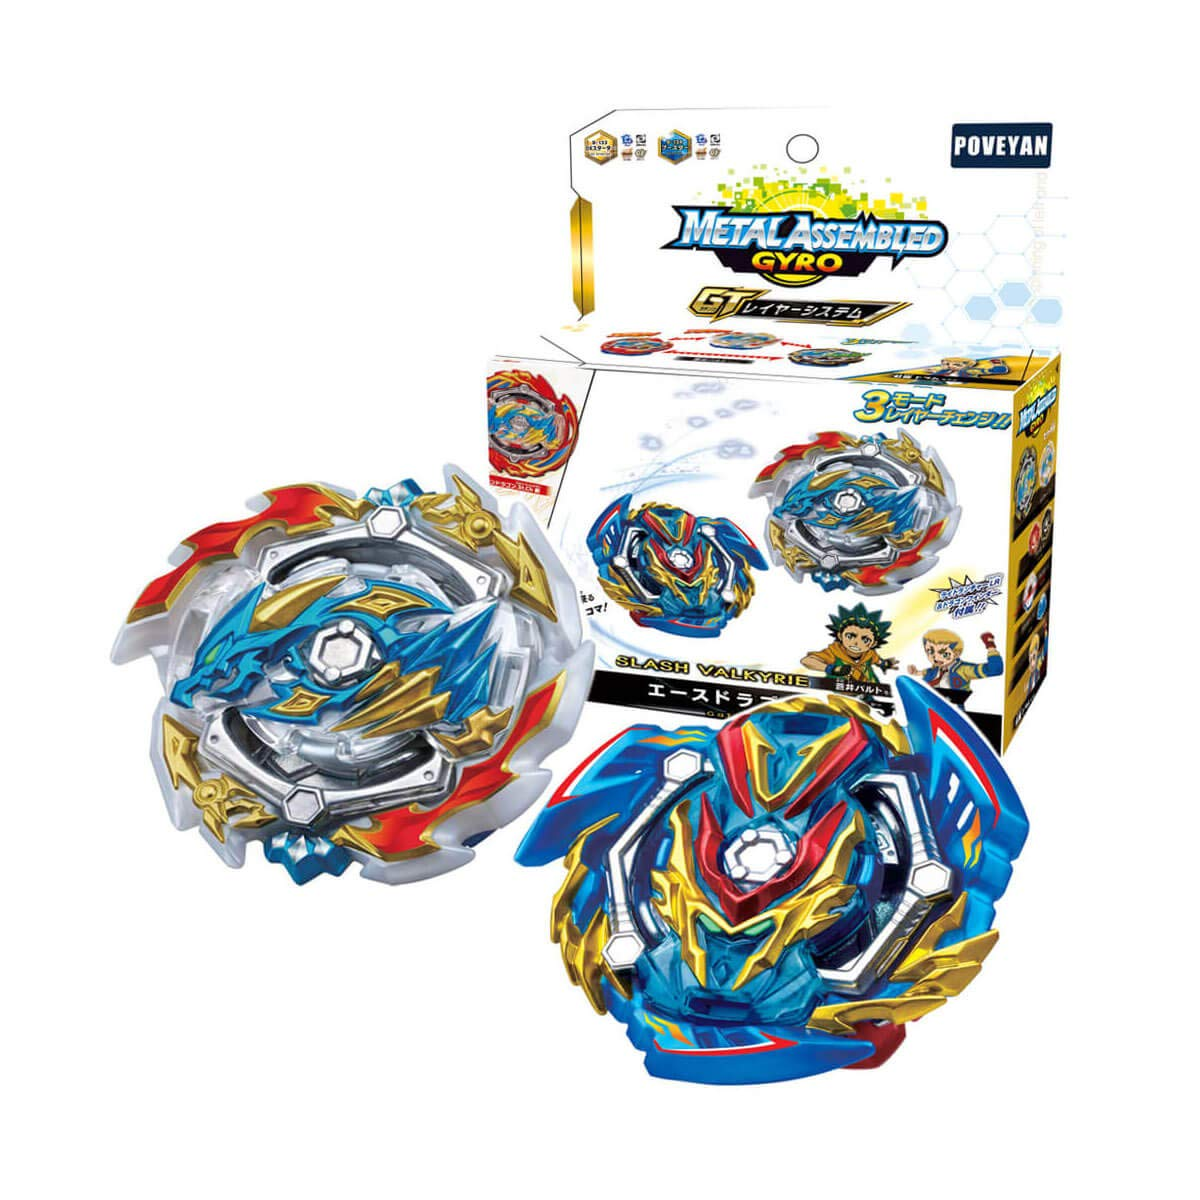 Poveyan Battle Burst GT Starter Strongest 3-Piece Set B-133 ACE Dragon.st.Ch and B-134 GT Booster Slash Valkyrie. Bl. Pw Burst with Launcher Set by Poveyan